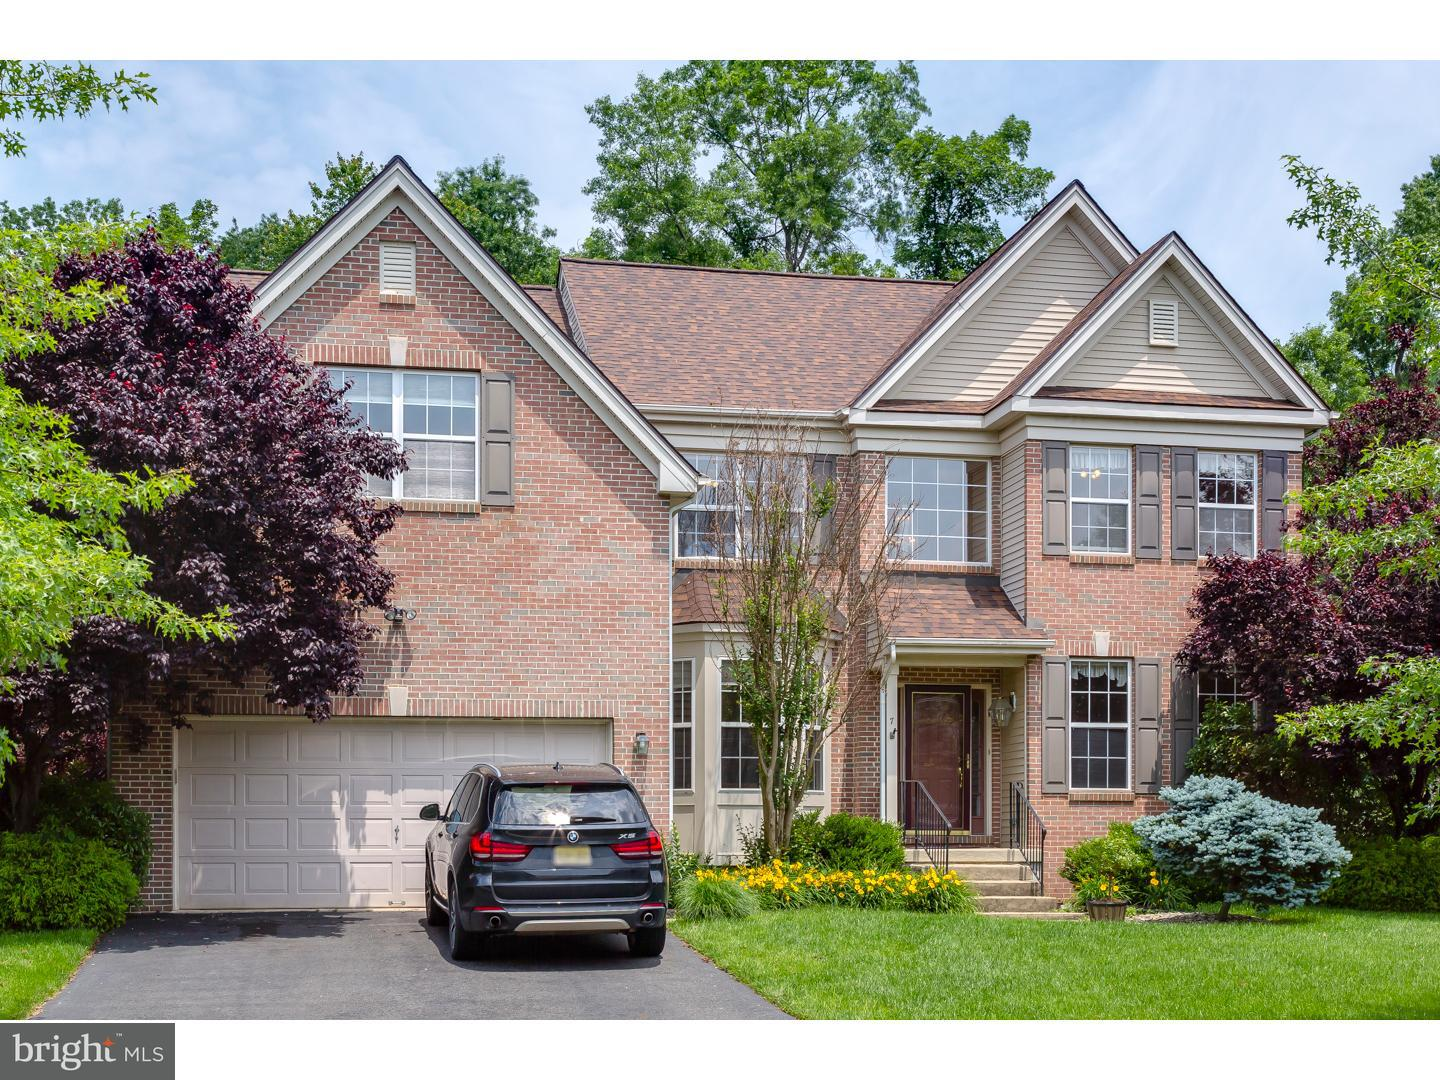 Single Family Home for Sale at 7 RIDING RUN Drive Evesham Twp, New Jersey 08053 United States